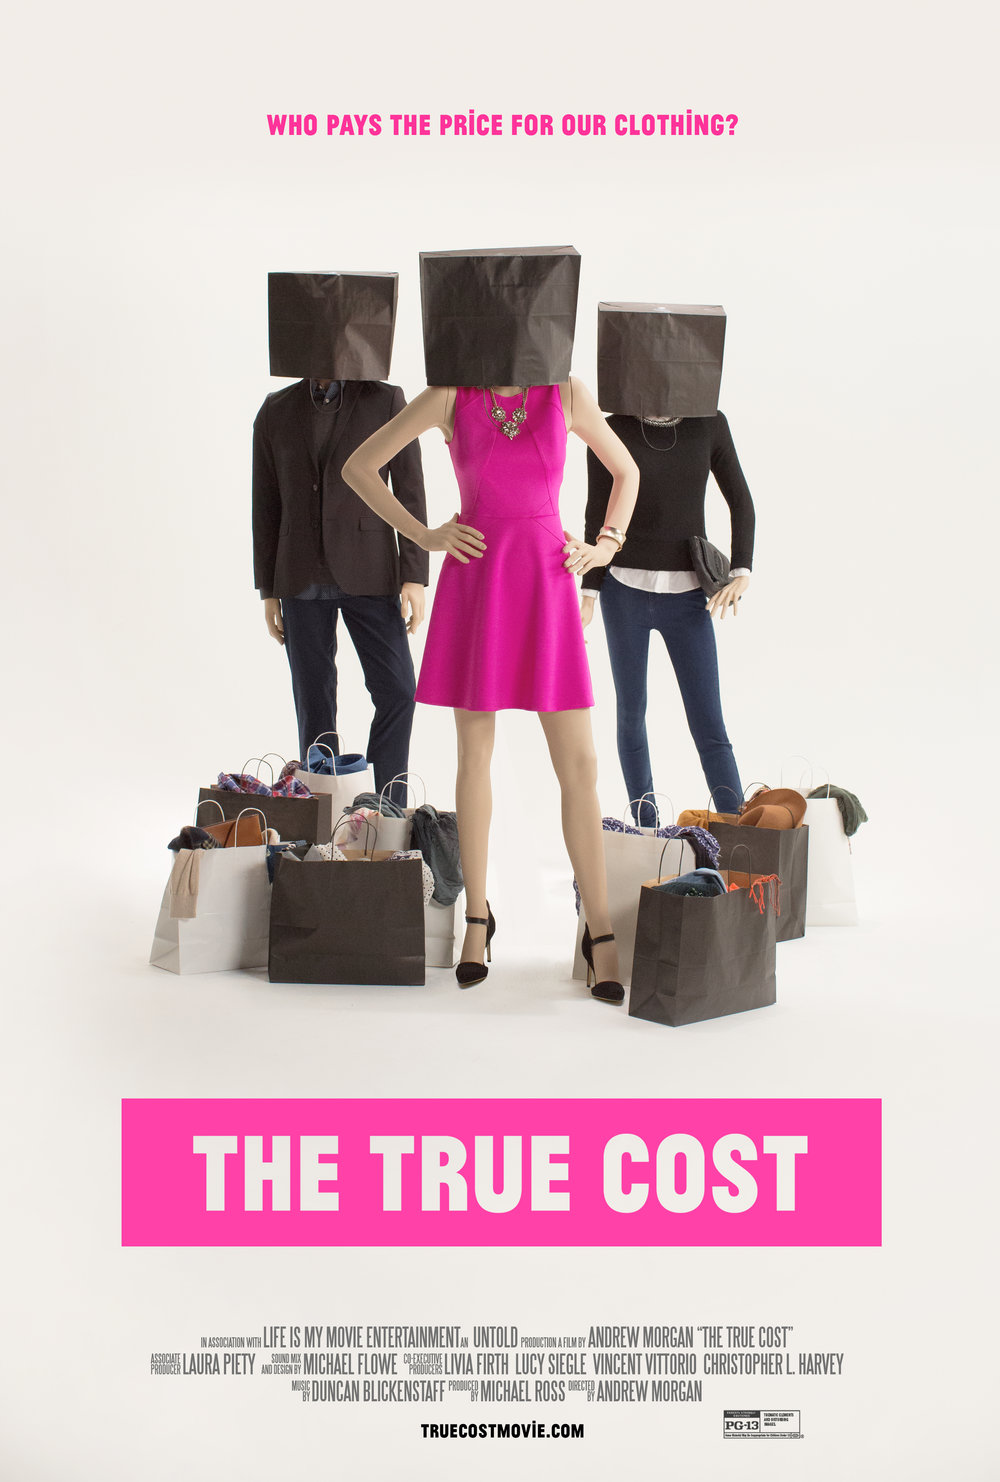 The True Cost | Andrew Morgan